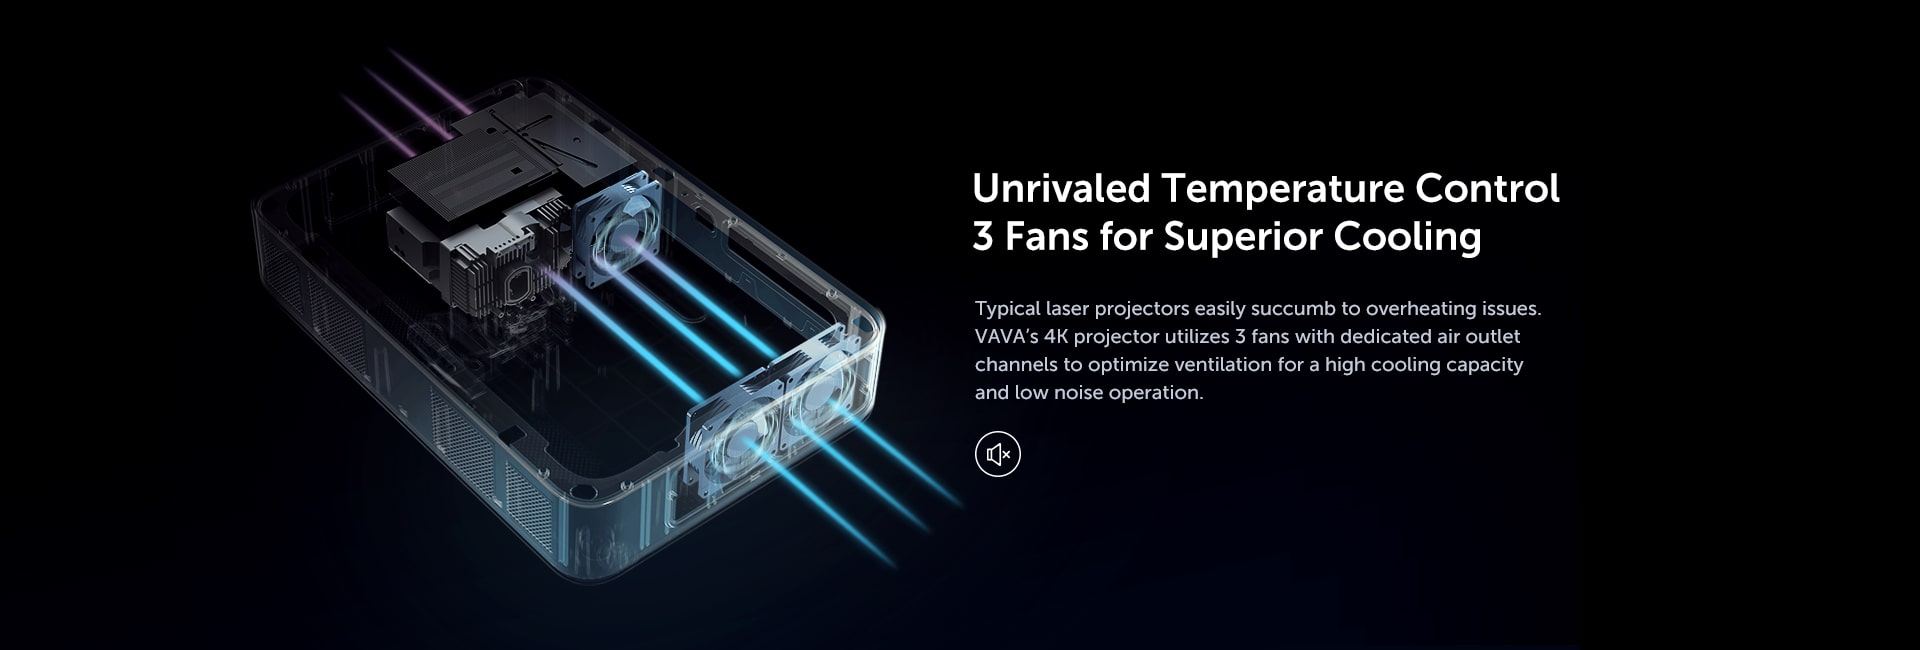 Unrivaled temperature control 3 fans for superior cooling